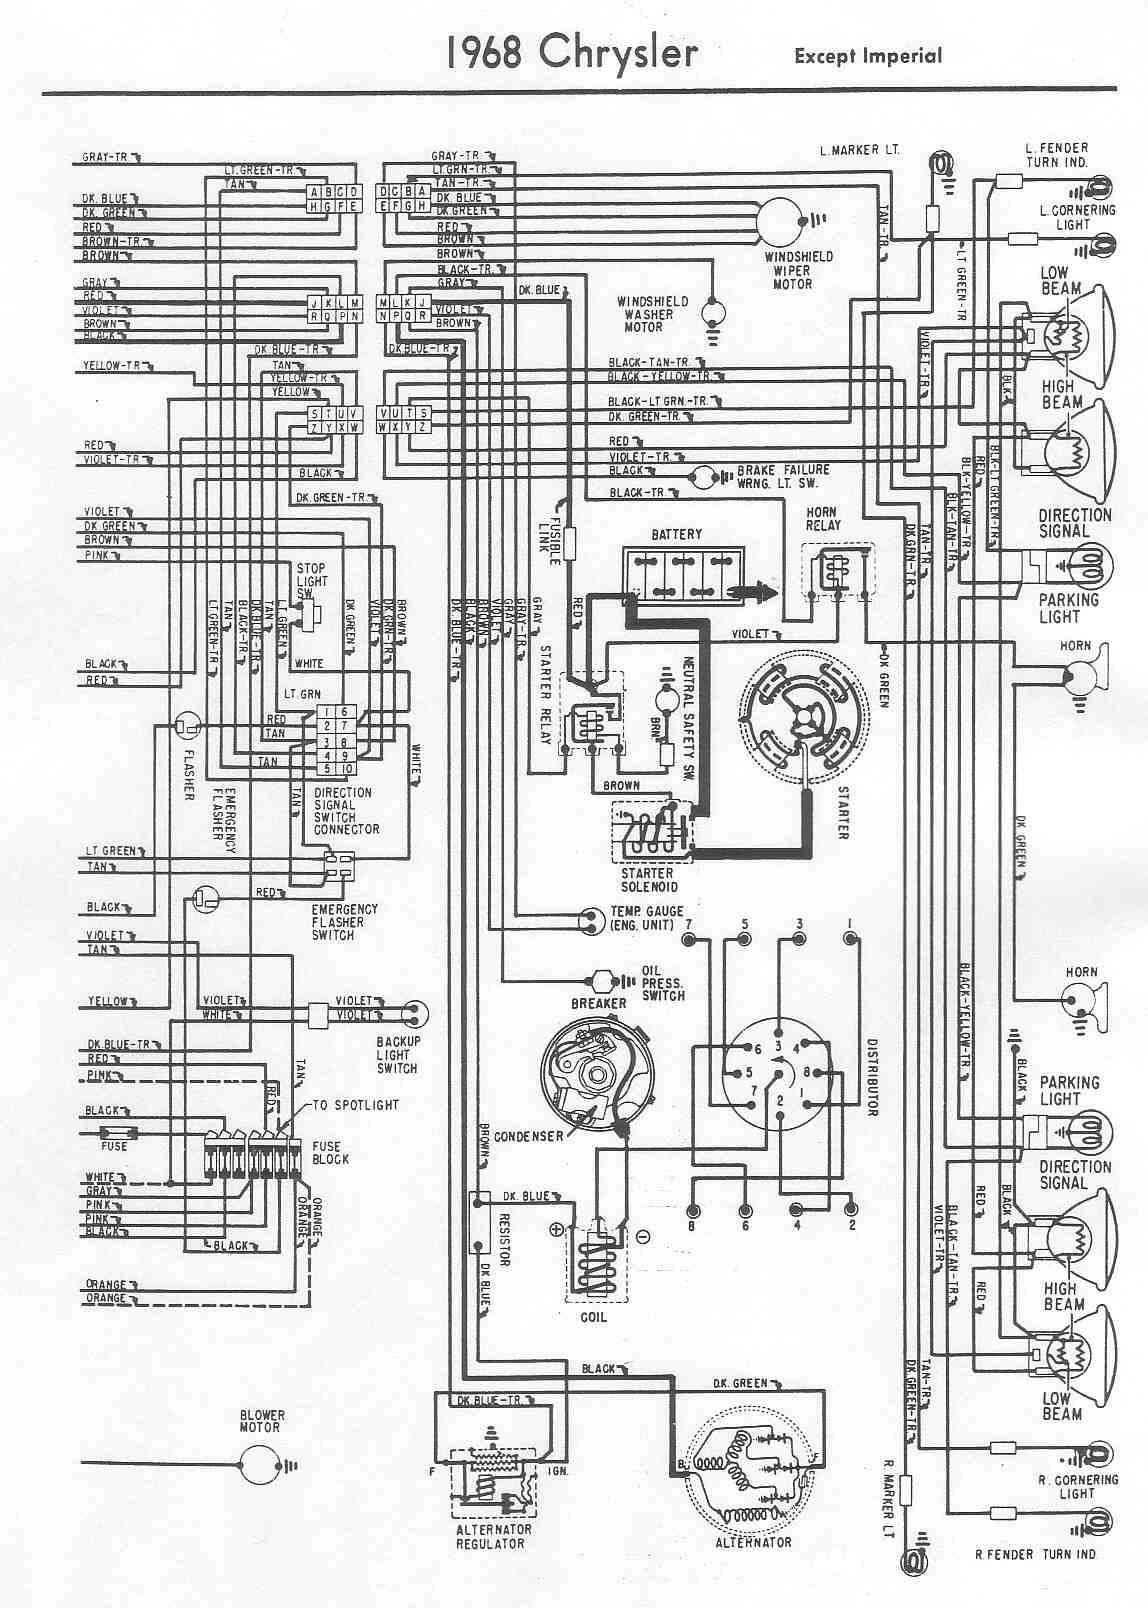 Fuse Box Diagram For 1963 Thunderbird Custom Wiring 1968 Impala 1966 Chevelle Fuel Gauge Vacuum Rh Banyan Palace Com Ford Mustang Chevy